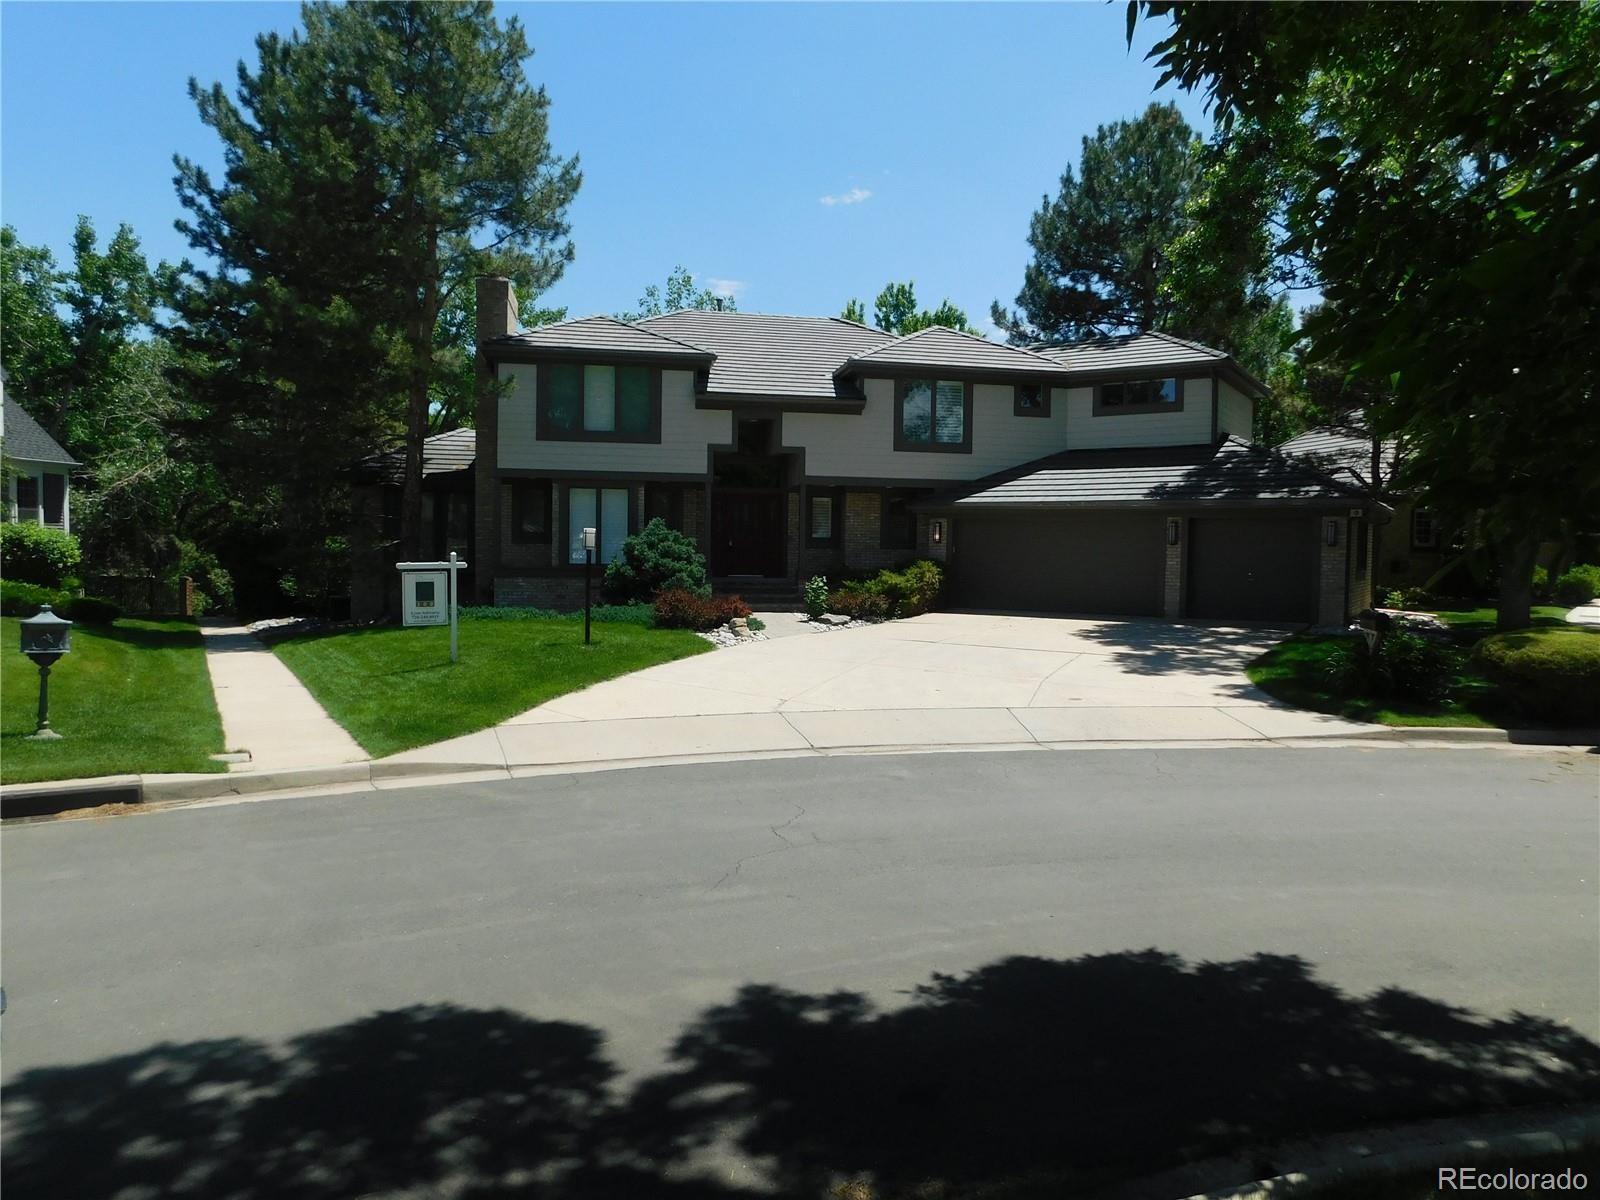 Beautiful updated custom contemporary home on a waterfront lot with mature trees located minutes from the Denver Tech Center. Features an open main floor with tall ceilings, fireplaces in the living room and family room, a bedroom/office with a covered deck and an elegant kitchen with an induction cooktop and quartz countertops. The dining room and family room open onto a second deck that overlooks the lake.  Upstairs is the master bedroom complete with a fireplace and newly renovated bathroom (2019) including heated floors and walk-in closet. An additional three bedrooms each have updated baths. The upstairs also includes an open study area with a built-in desk.  The finished basement includes a 6th bedroom (or office) complete with a full bath. The spacious living area on this floor offers lots of natural light, garden level windows and 3 storage rooms with built-in shelves and closets.  This beautiful home has easy access to active walking and biking paths, community pools / tennis courts, and Cherry Creek Schools. With no adjacent neighbors to the front or rear there is plenty of privacy to enjoy summer evenings on the decks, walking the neighborhood paths, or just warming in front of one of the property's several fireplaces.  PROPERTY IS VACANT AND EASY TO SHOW.